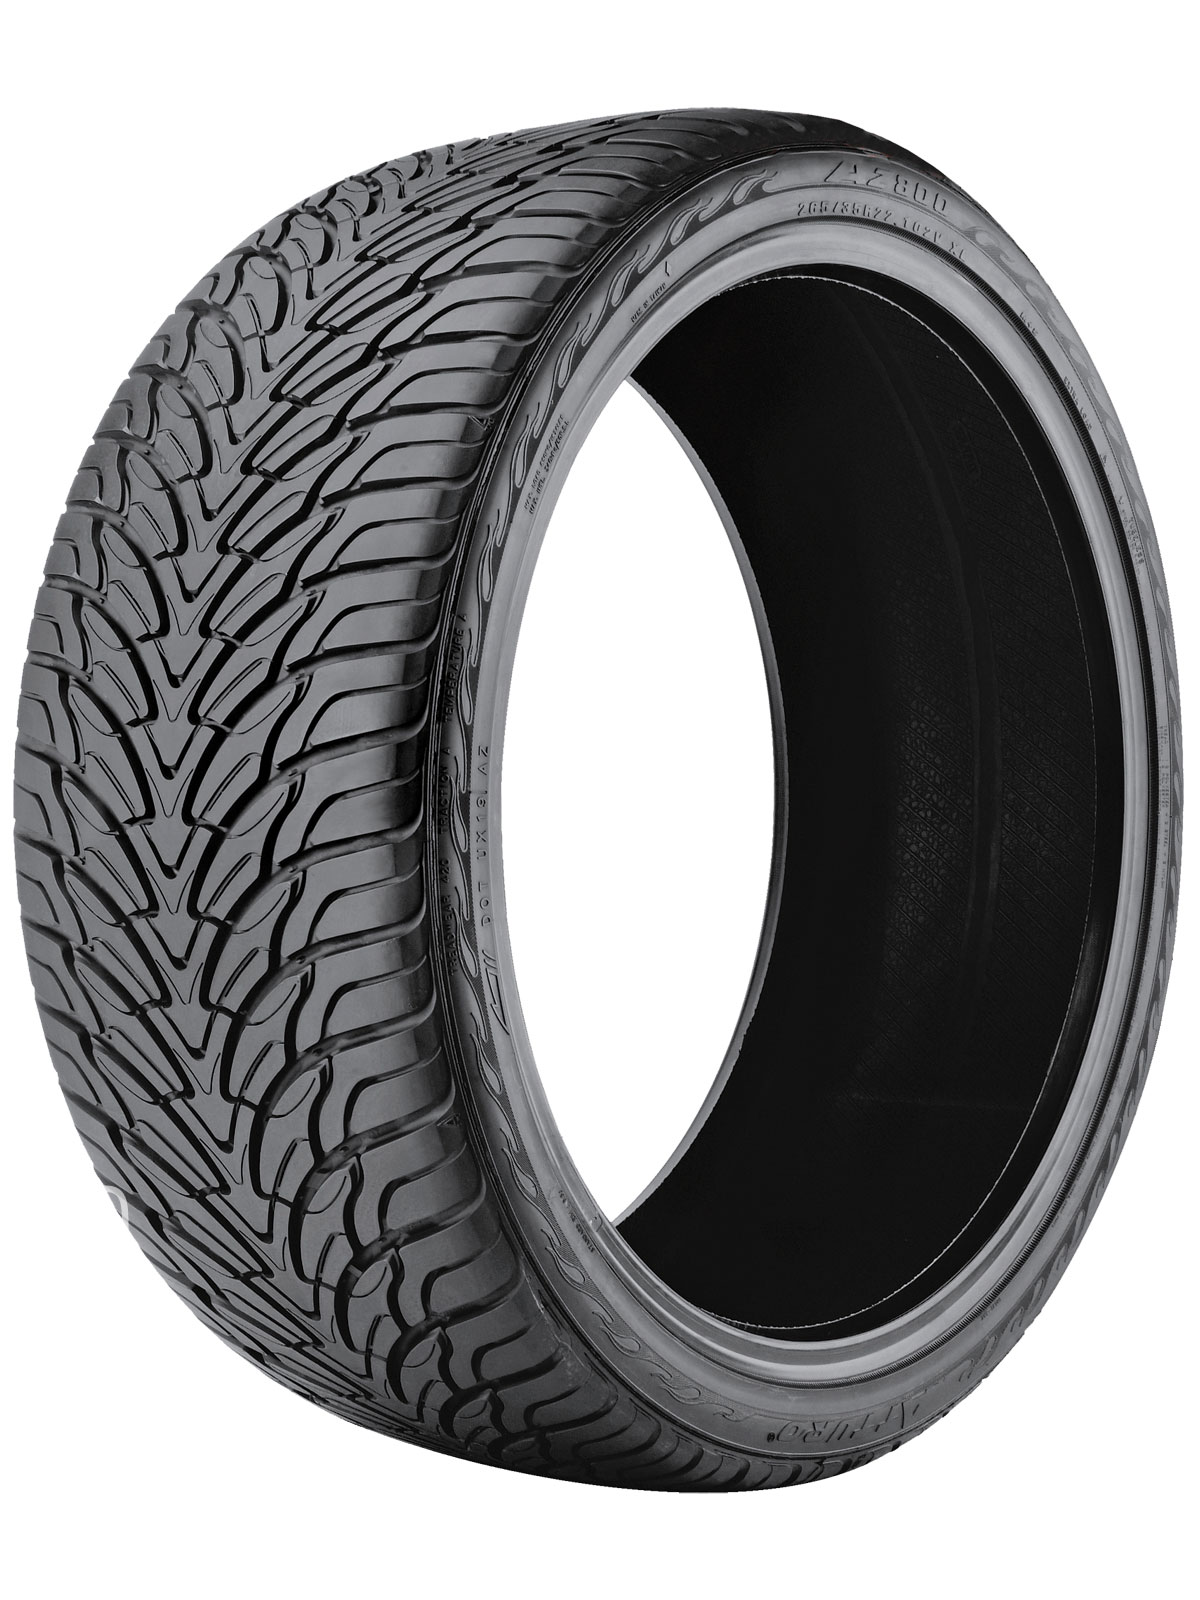 1102_8l_28+wheel_tire_buyers_guide+atturo_az800